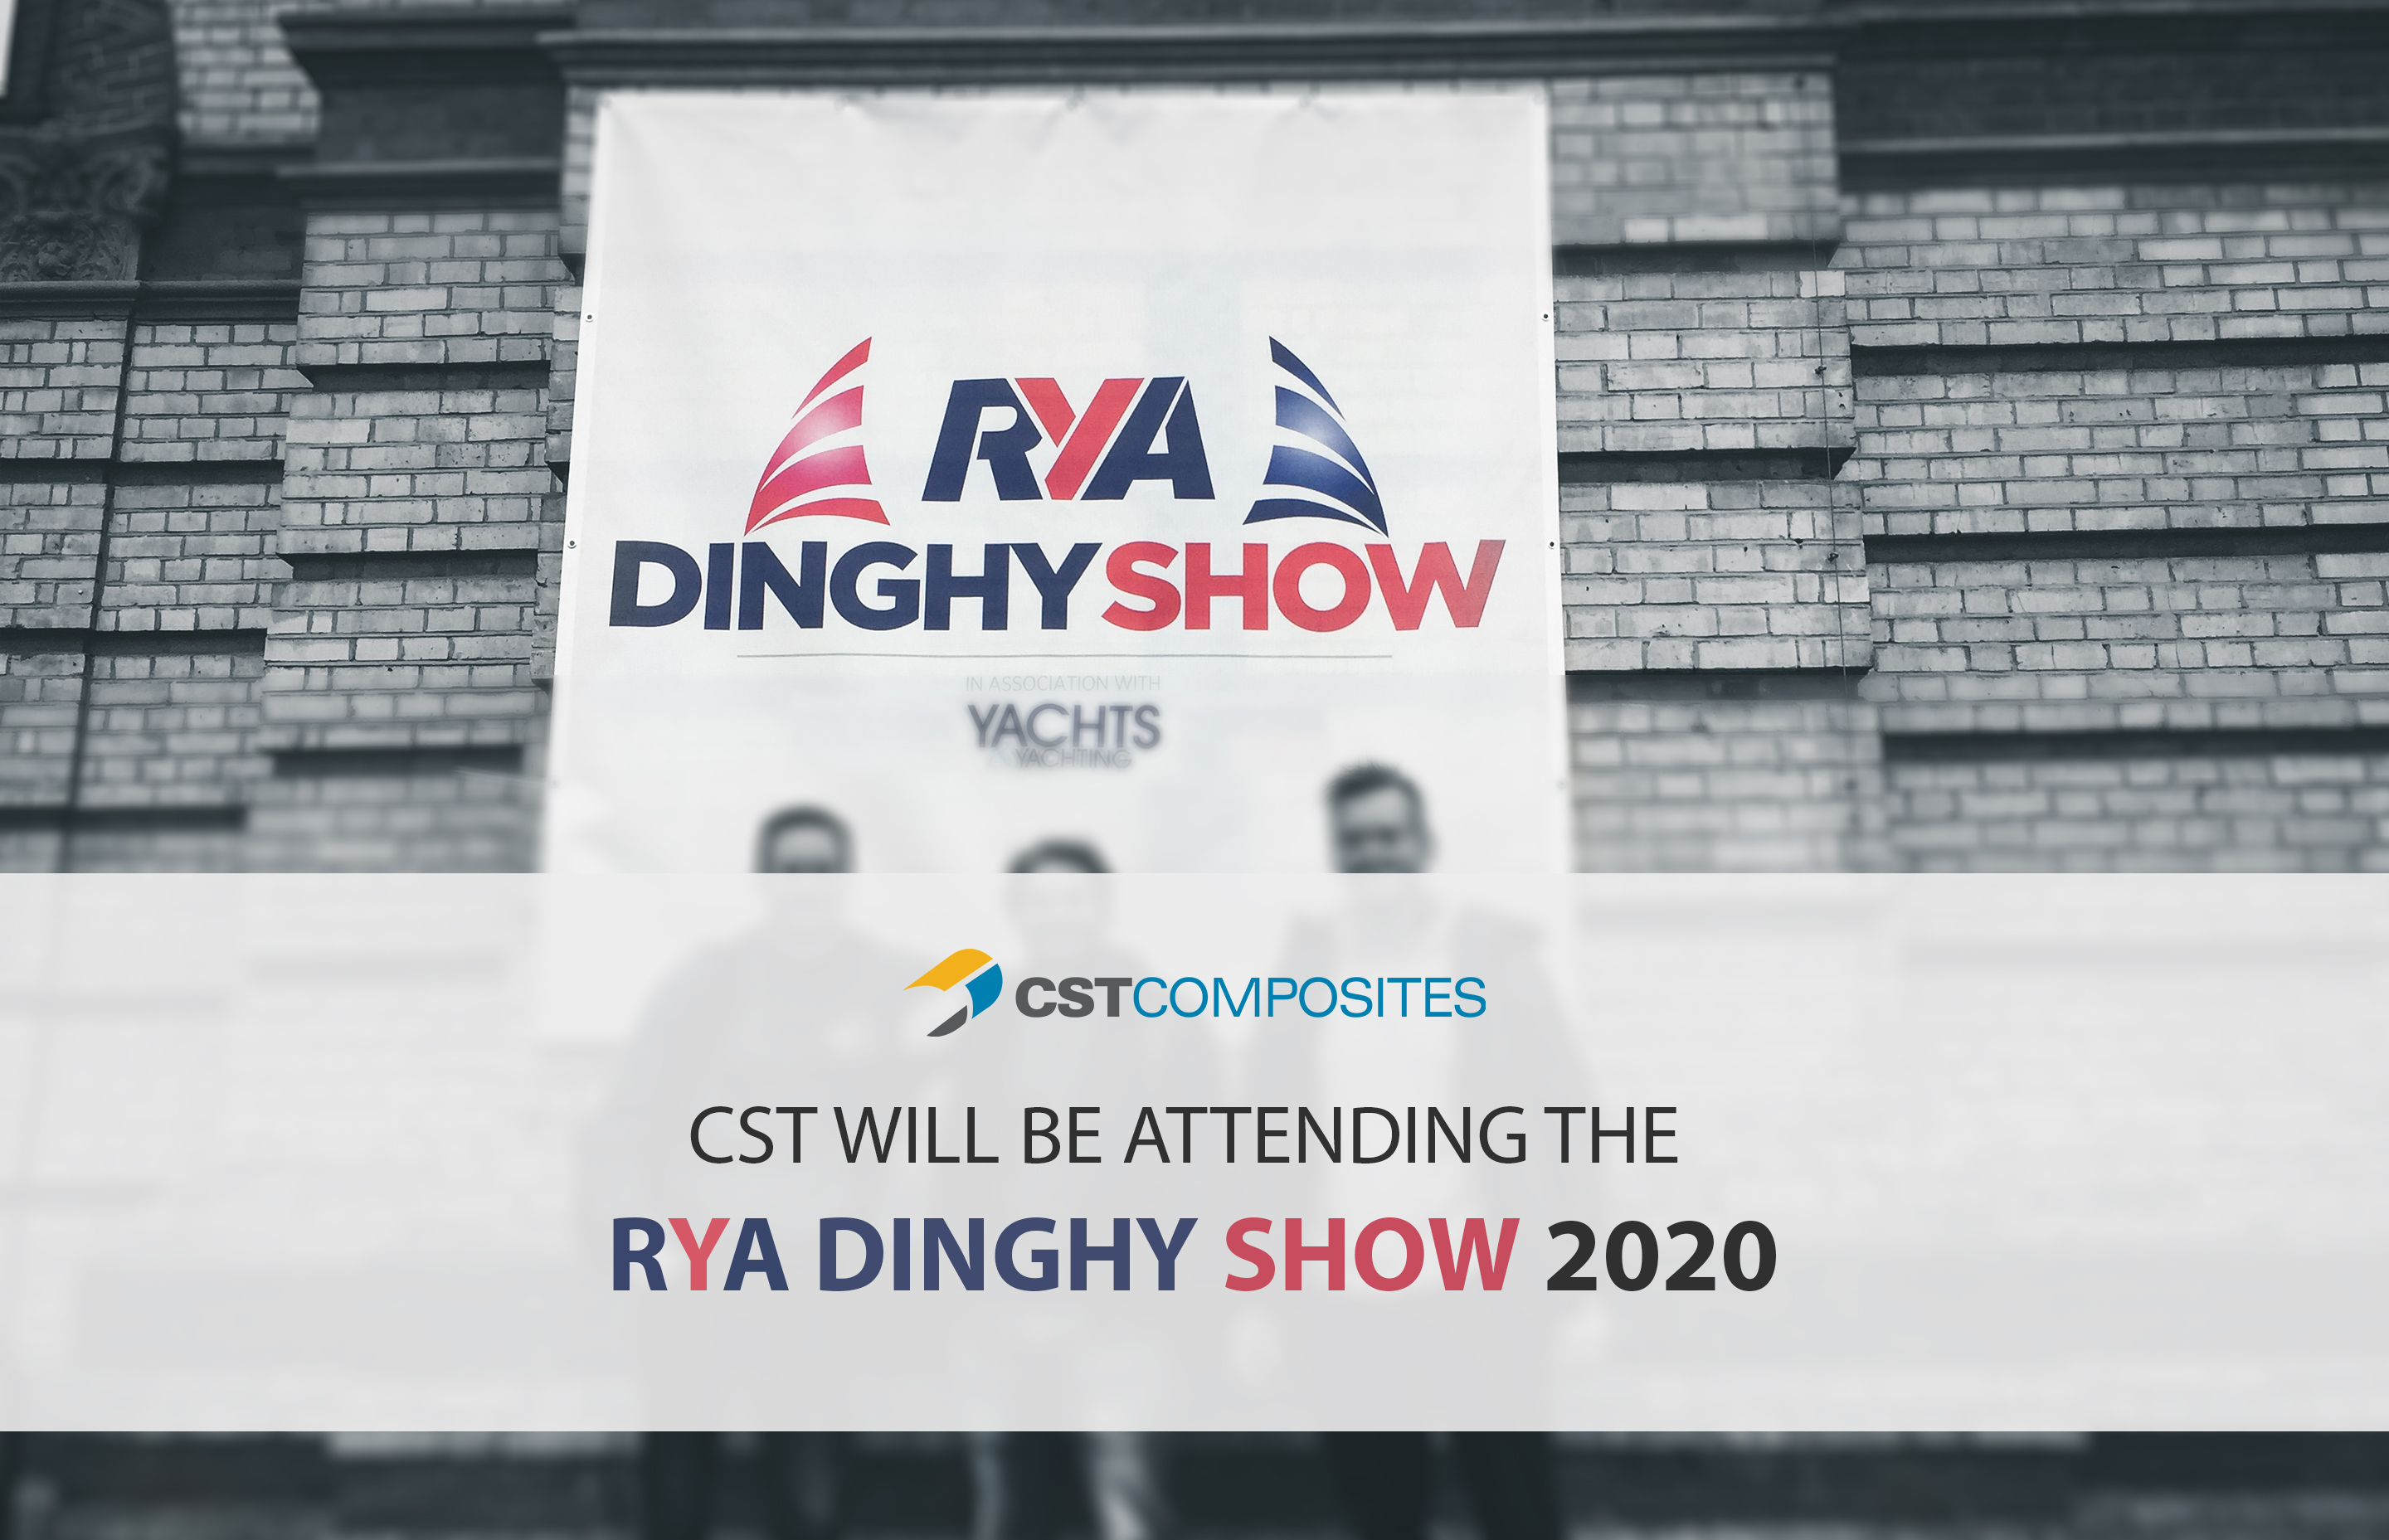 We are attending the RYA Dinghy Show 2020